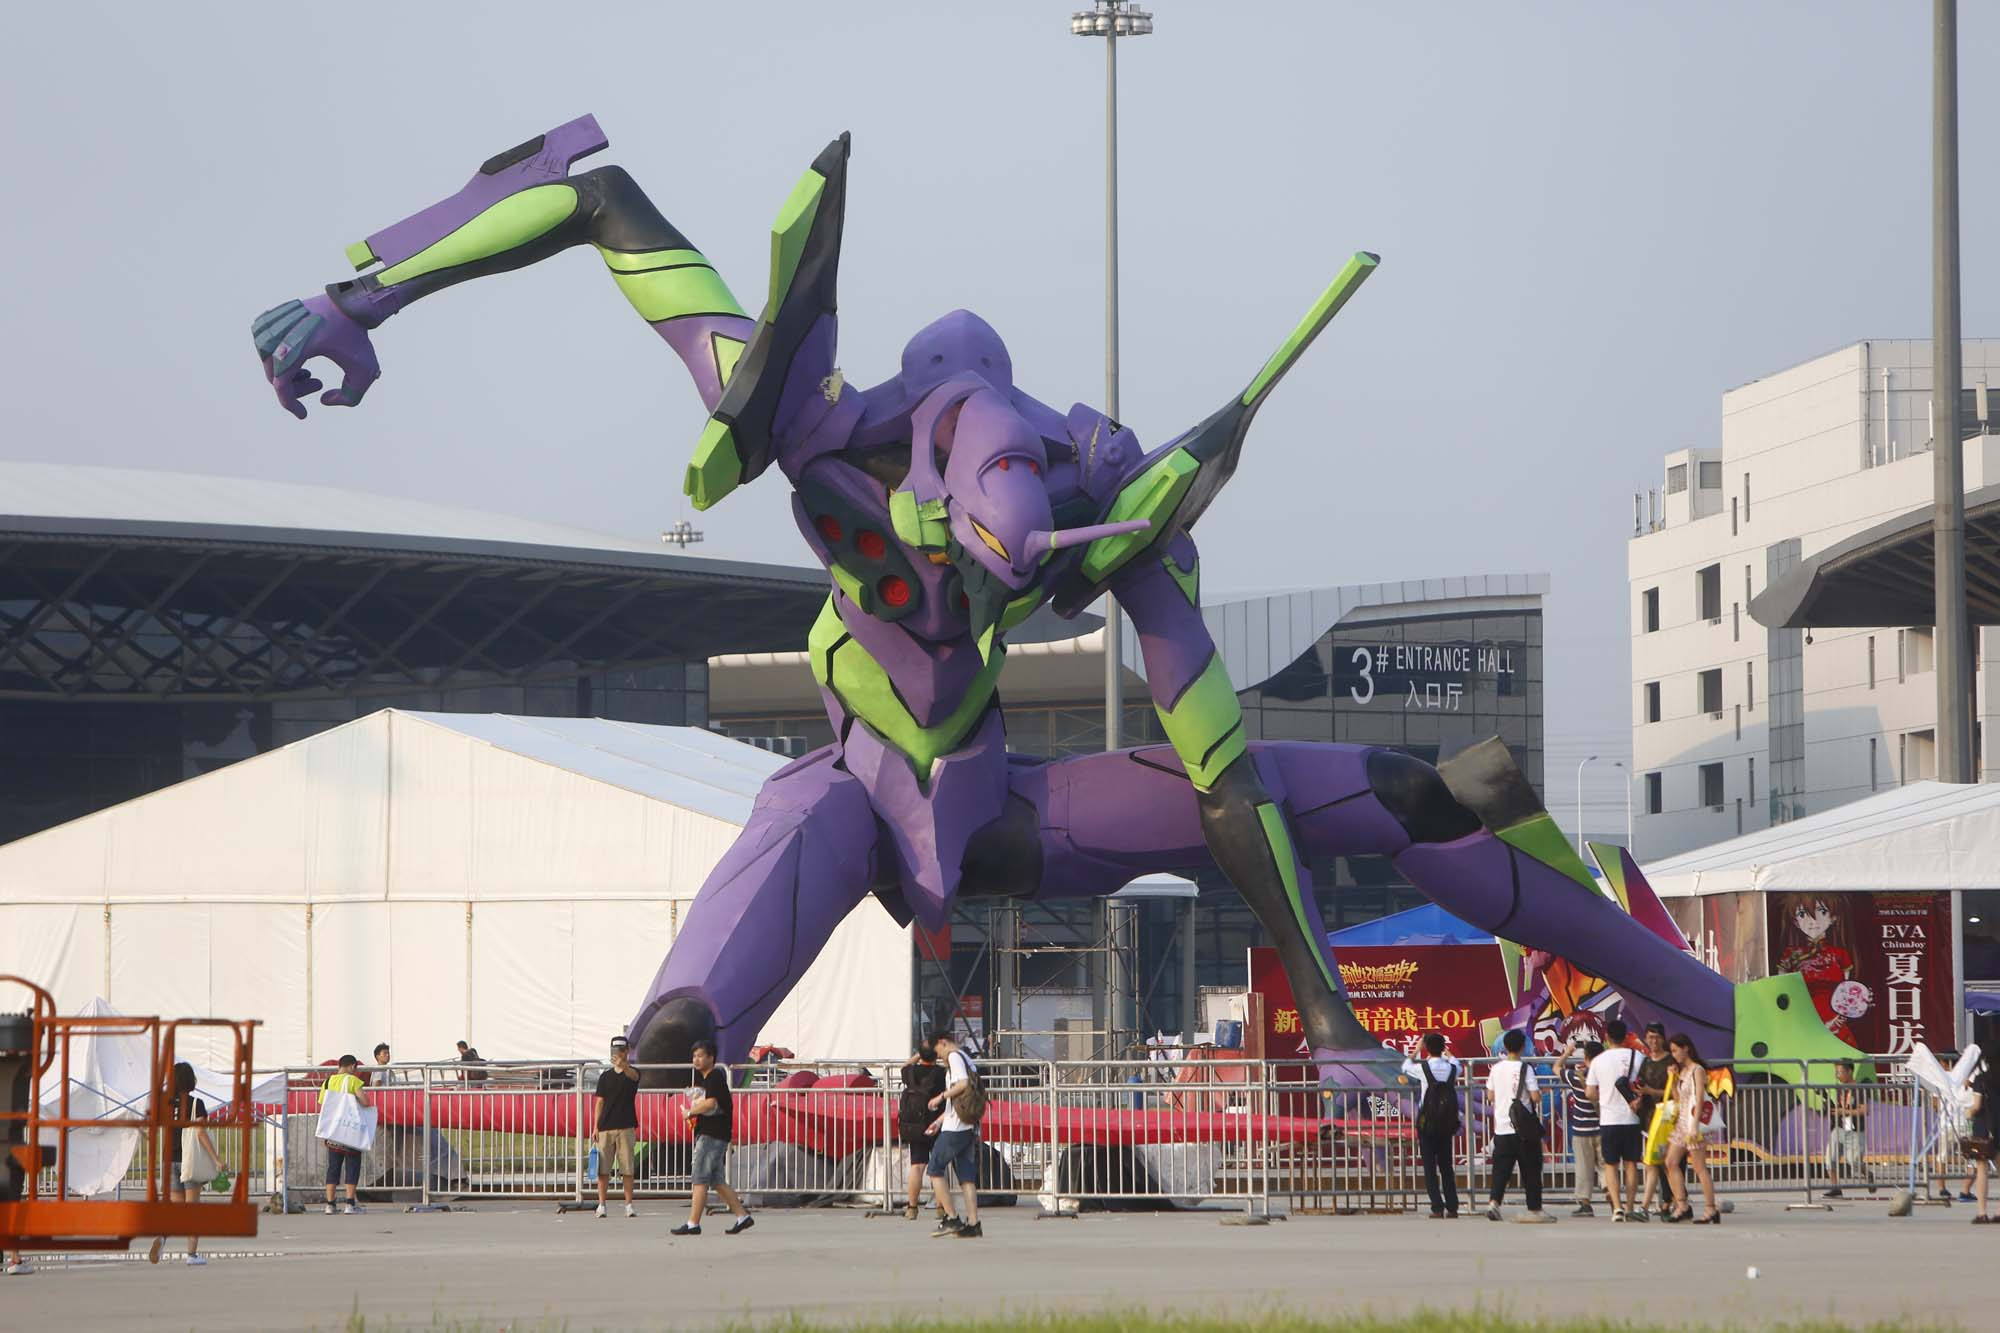 Visitors walk past a giant model of Evangelion Unit-01 from the 'Neon Genesis Evangelion' anime on display in Shanghai in June 2016. Japanese pop culture is thriving worldwide, but the Japanese entertainment industry could do much more to bring the profits back to Japan. | KE YI — IMAGINECHINA